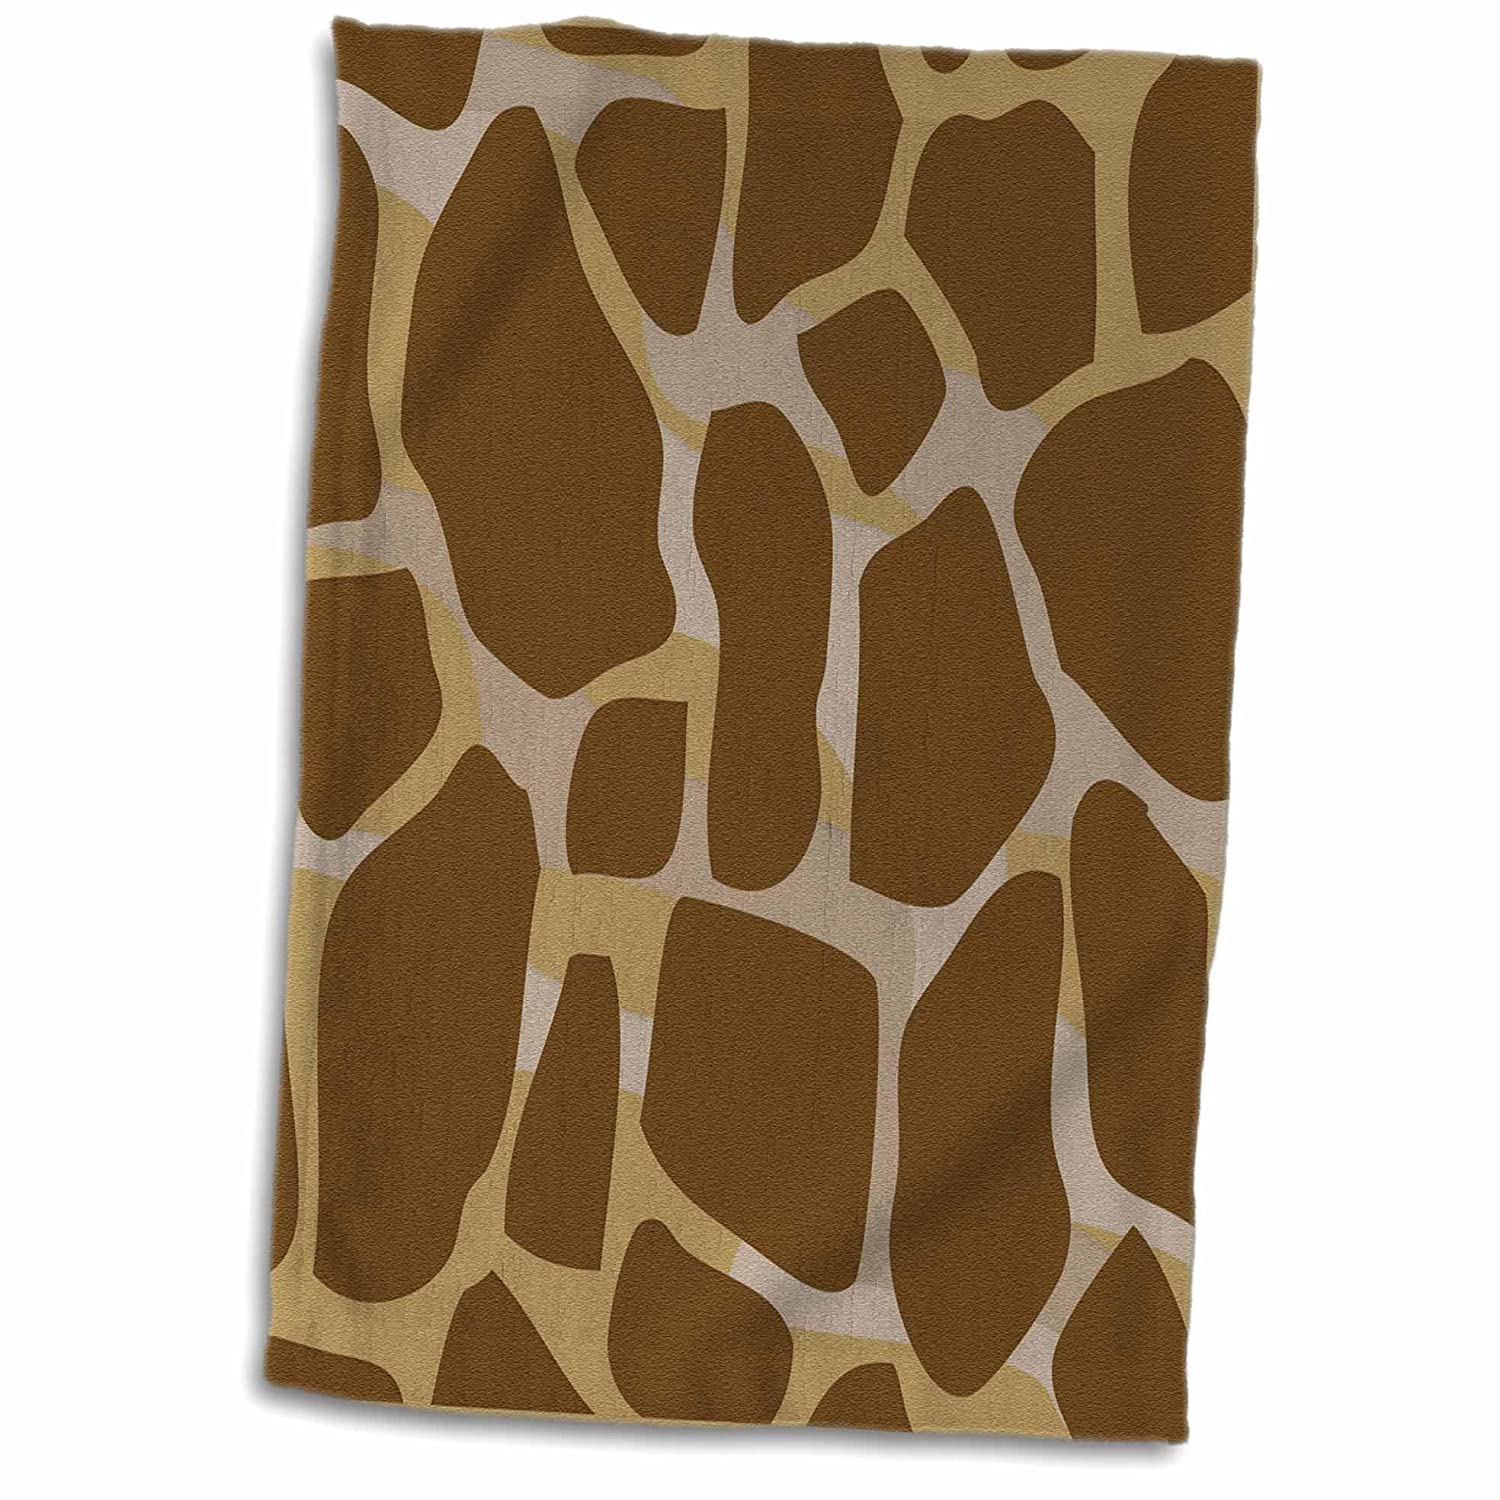 3D Rose Brown and Beige Layered Giraffe Print Hand Towel 15 x 22 Multicolor